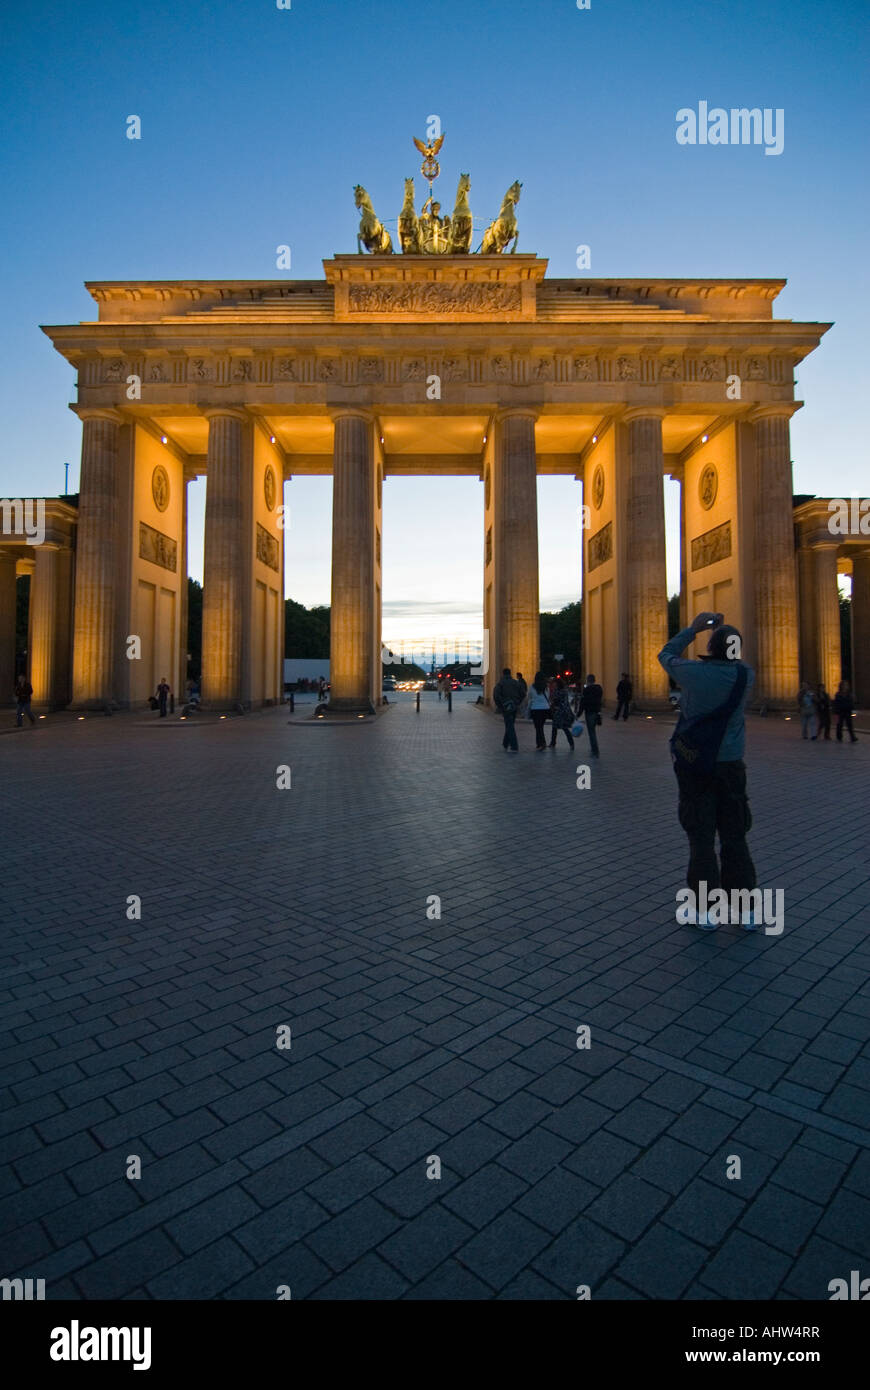 Stock Photo - Vertical wide angle of the Brandenburg Gate on Pariser Platz  illuminated at night